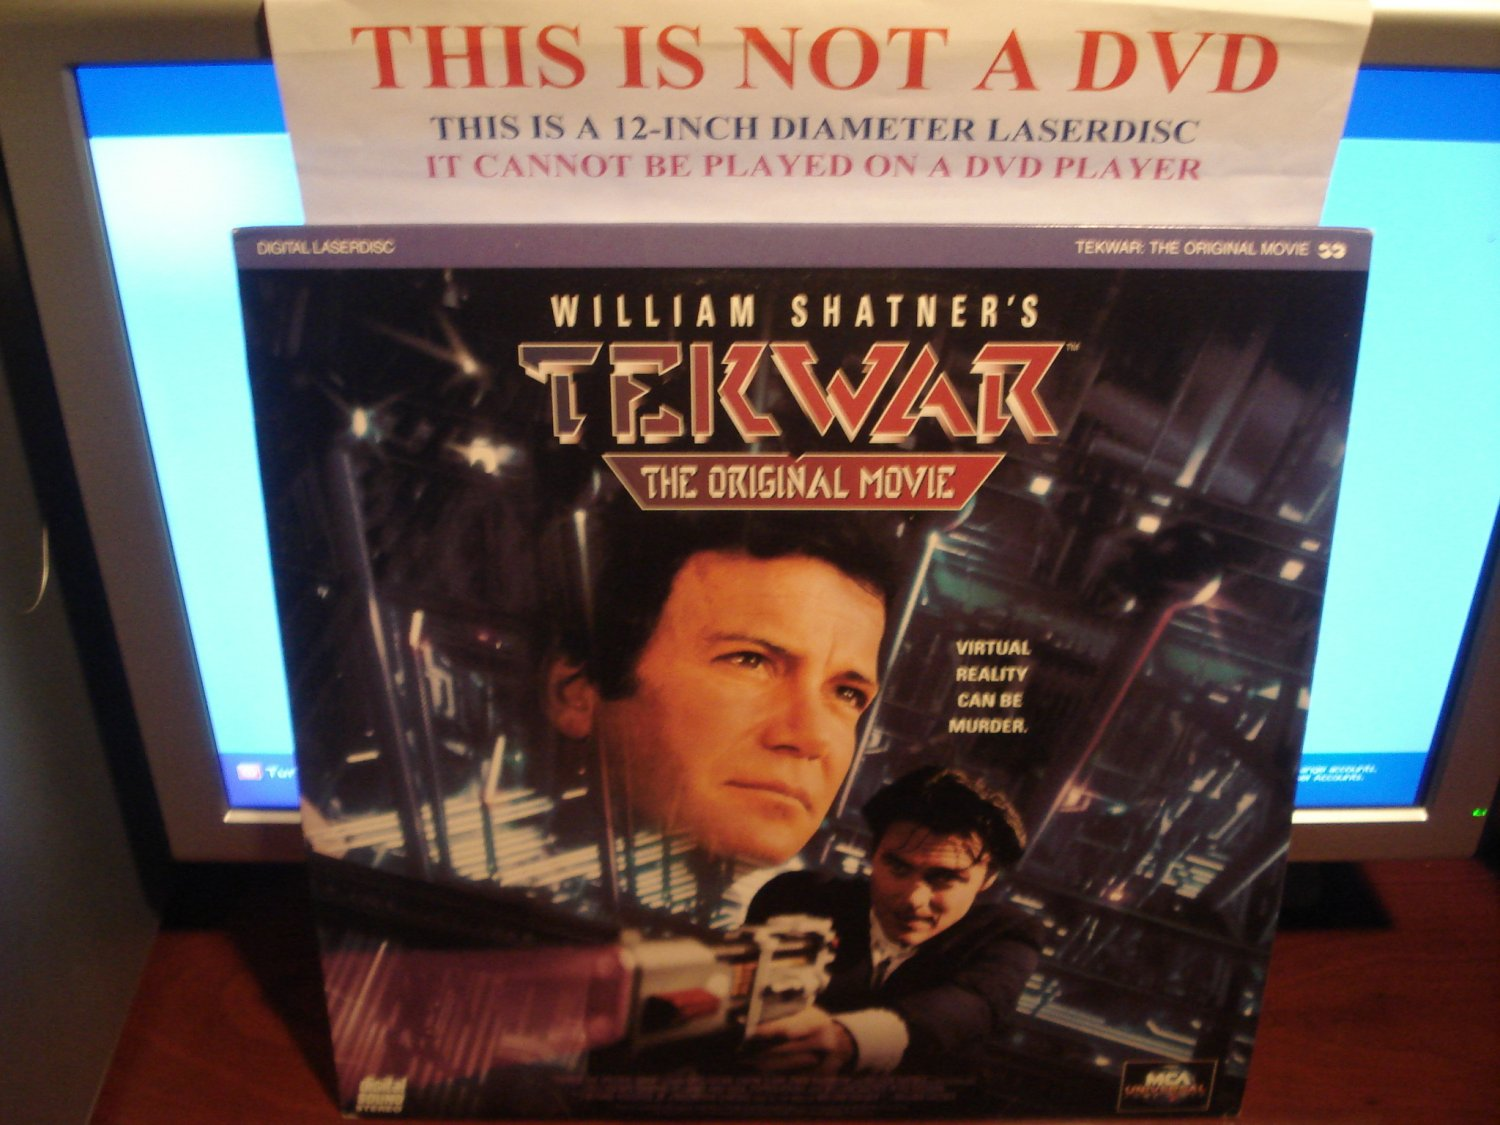 Laserdisc TEKWAR: THE ORIGINAL MOVIE 1993 William Shatner Lot#2 FS Rare Sci-Fi LD